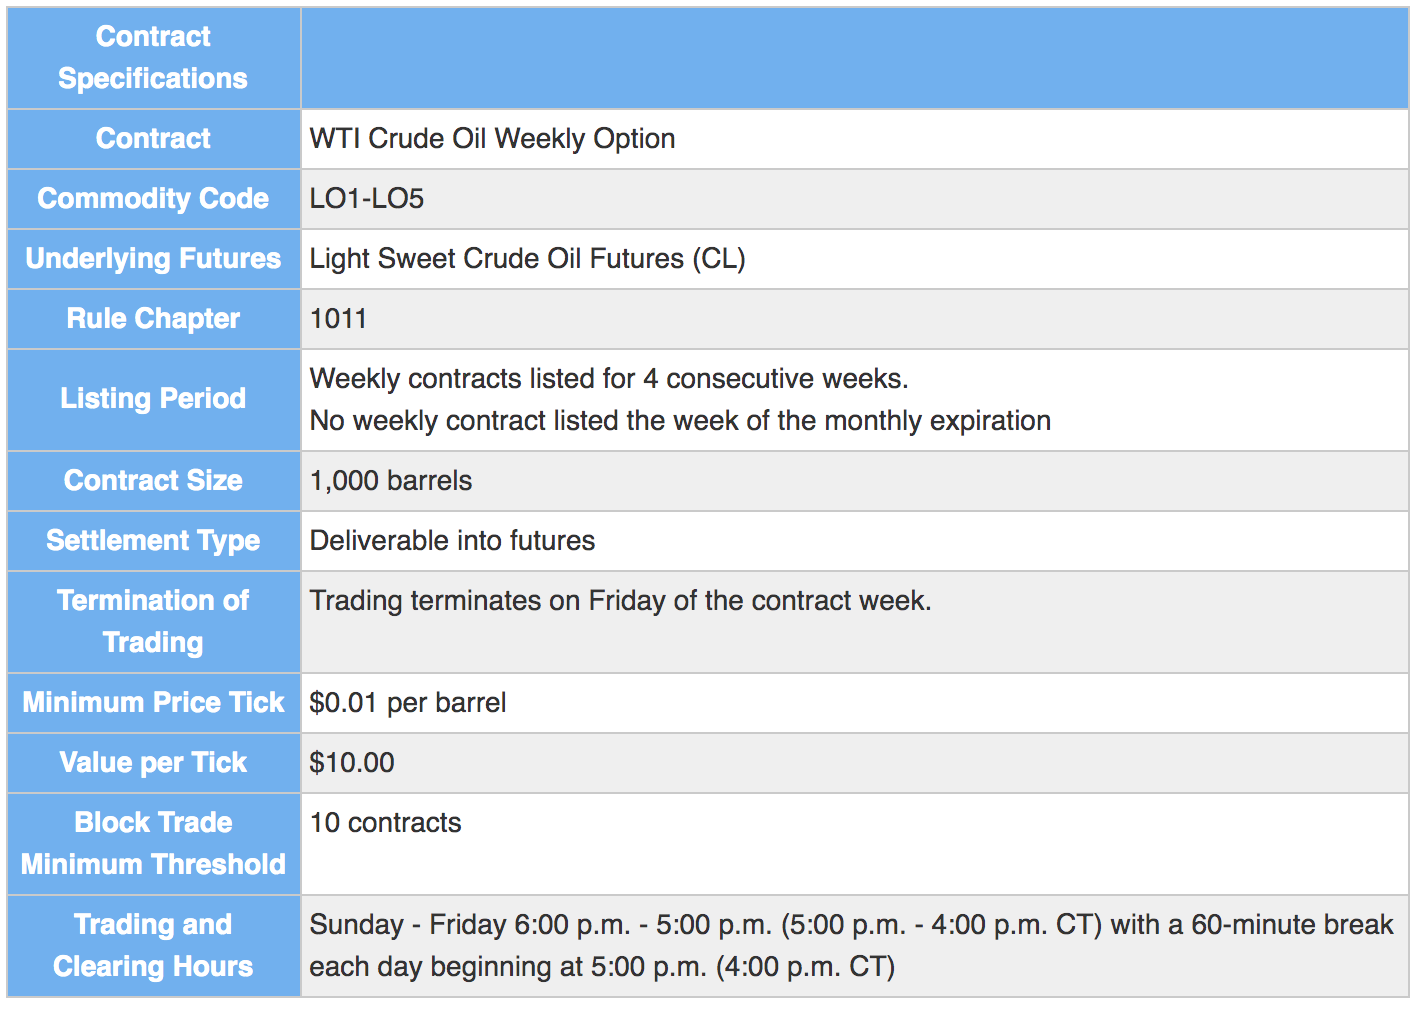 Figure 6. WTI Crude Oil Weekly Options – Contract Specifications